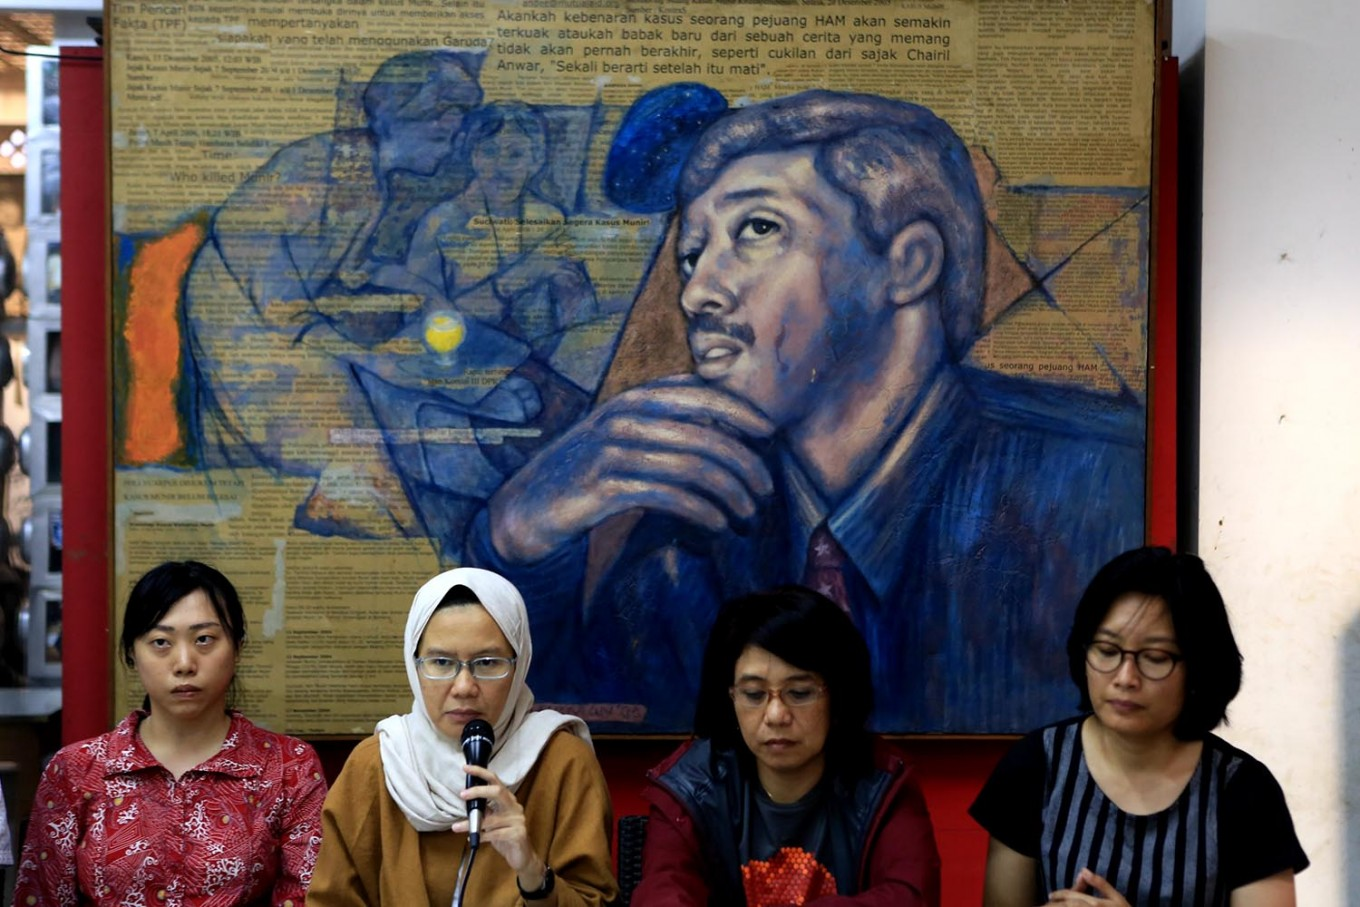 After four years, Jokowi still 'has lots to do' for human rights, graft fight